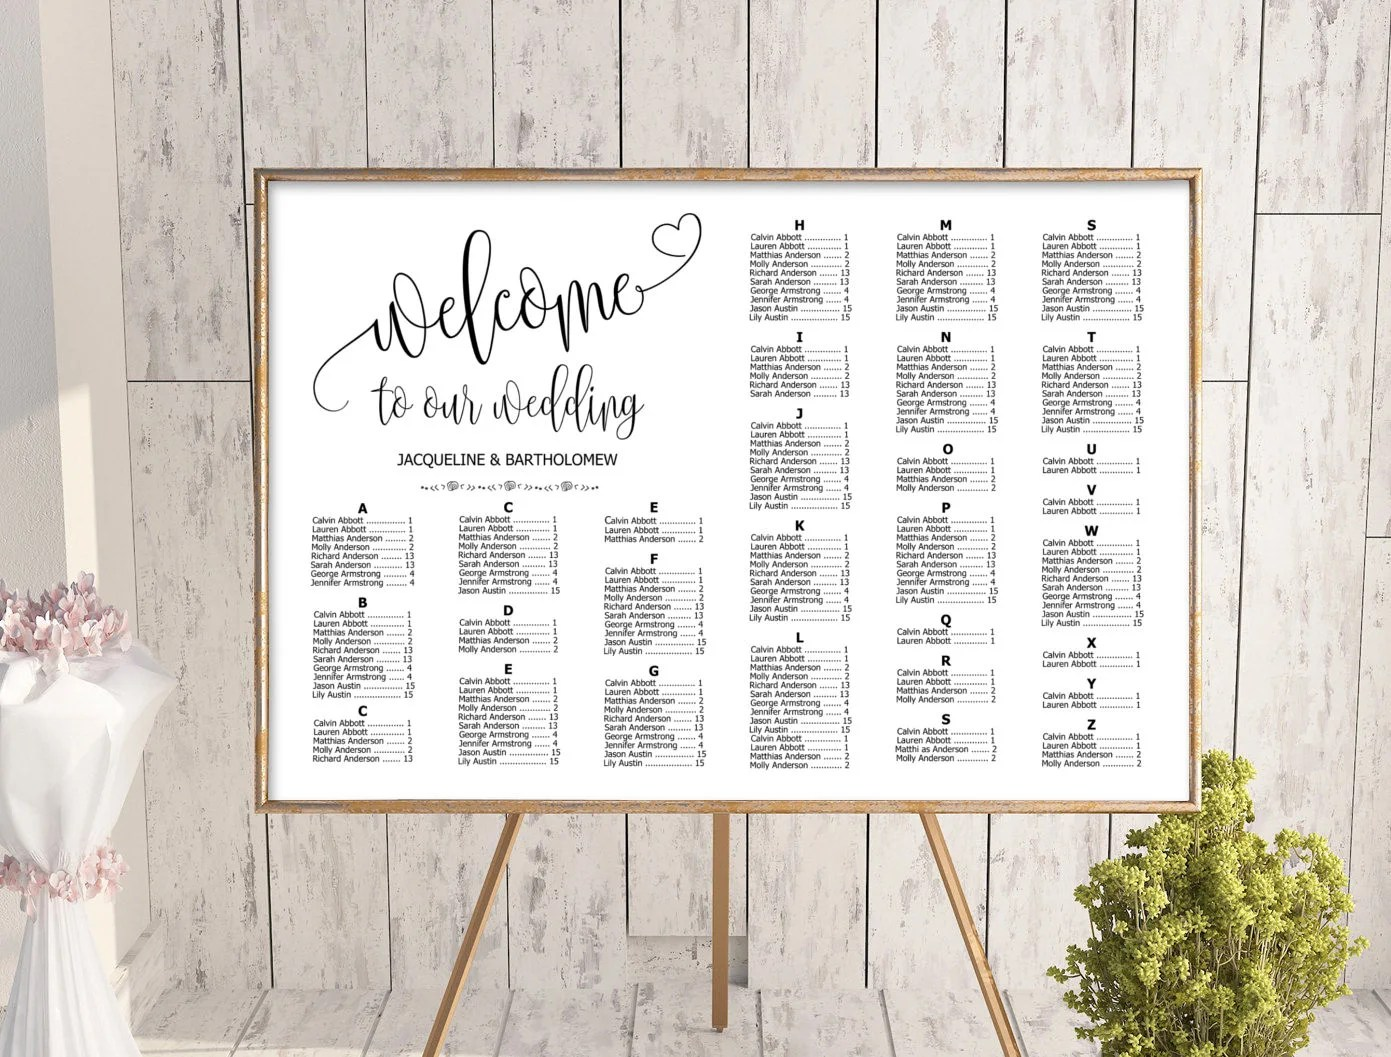 Wedding alphabetical seating chart template printable editable plan find your seat sign also rh etsy